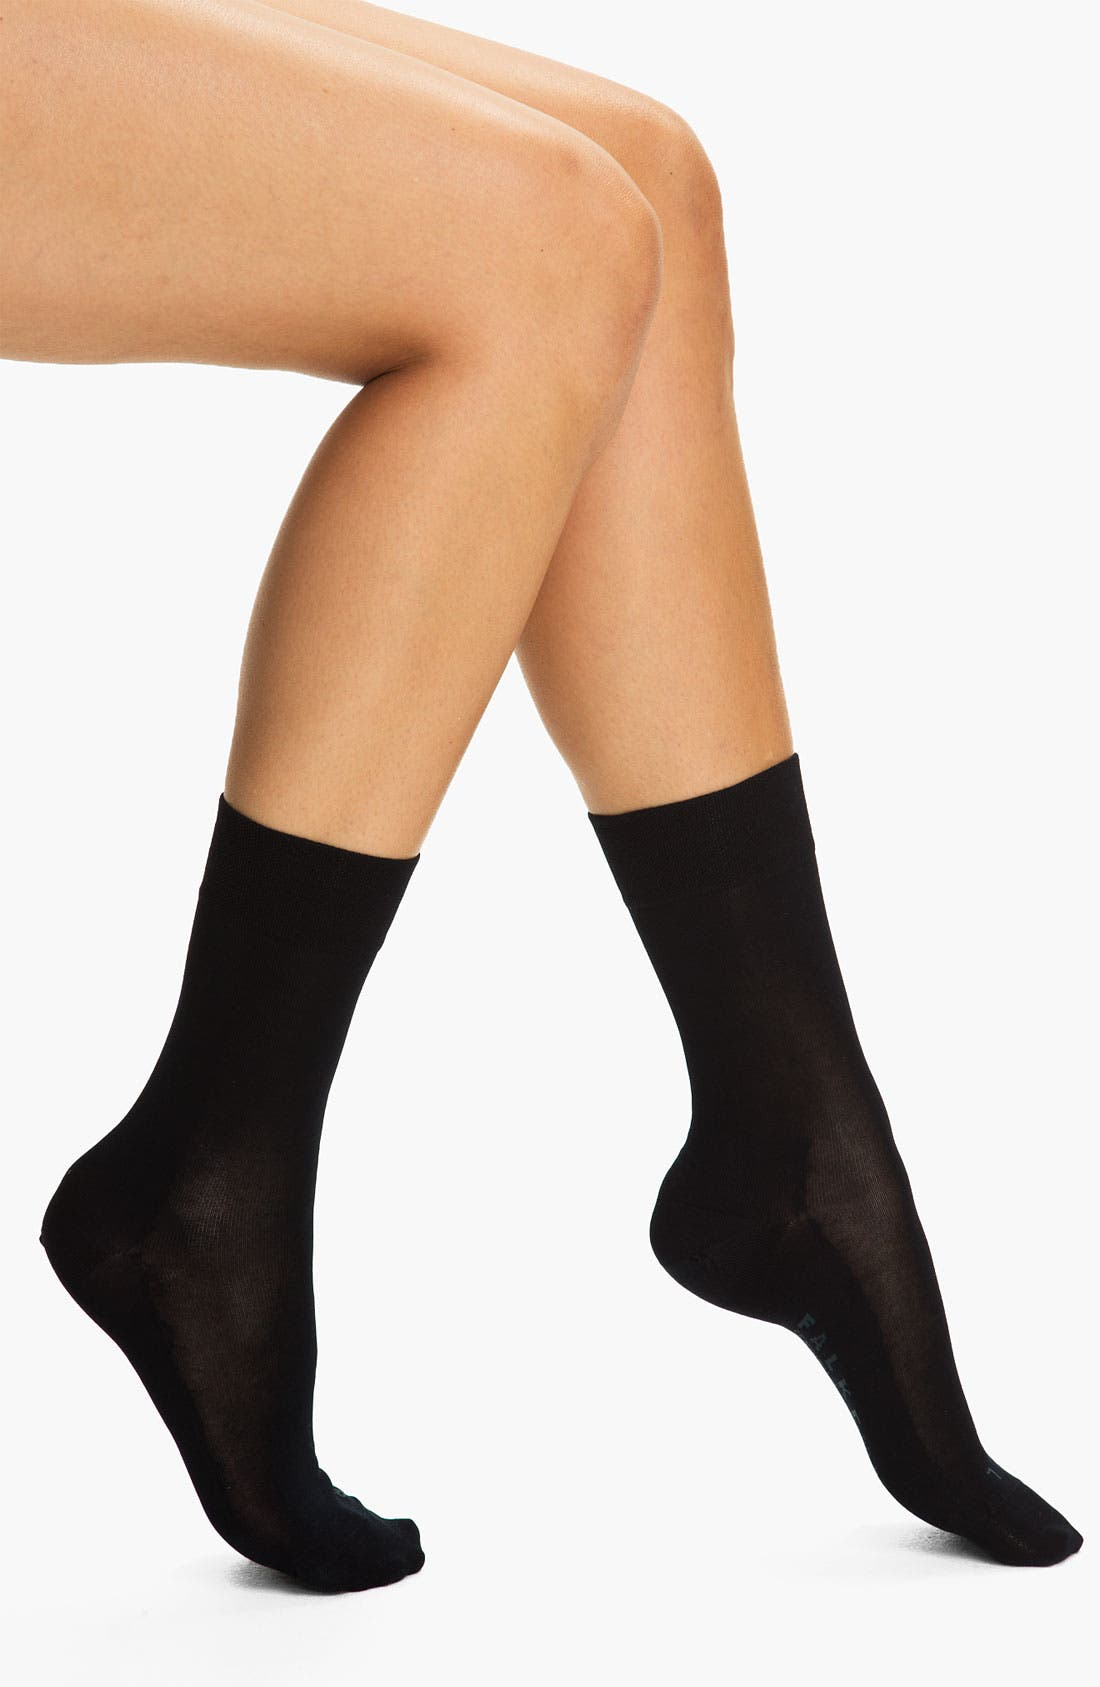 Main Image - Falke 'Sensitive Malaga' Socks